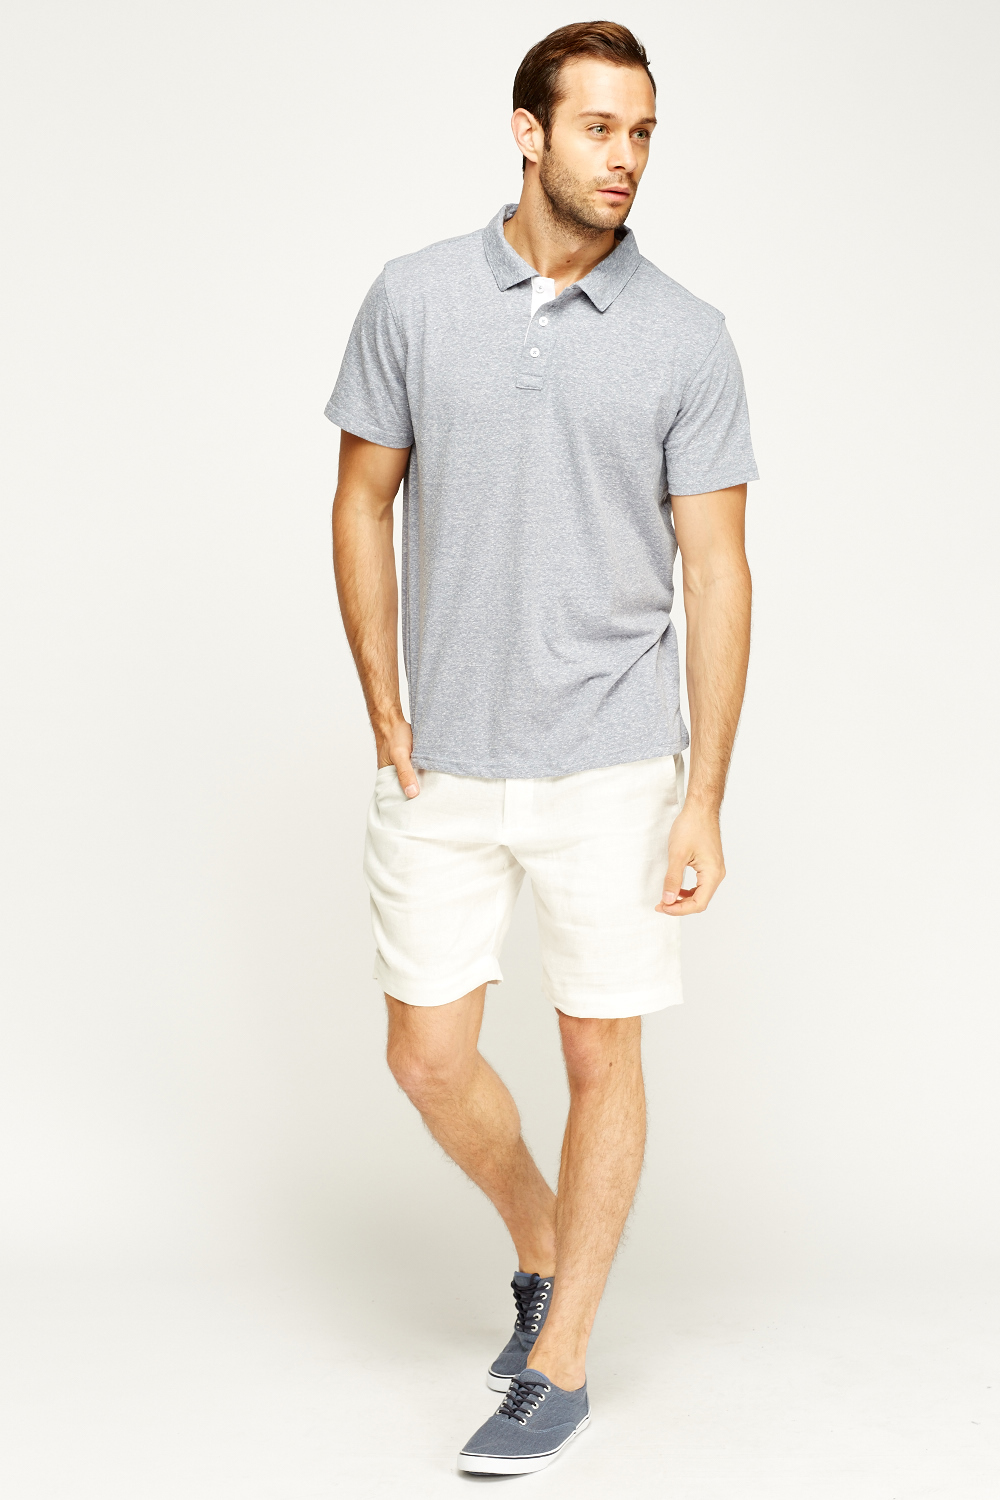 White Casual Linen Shorts - Just £5